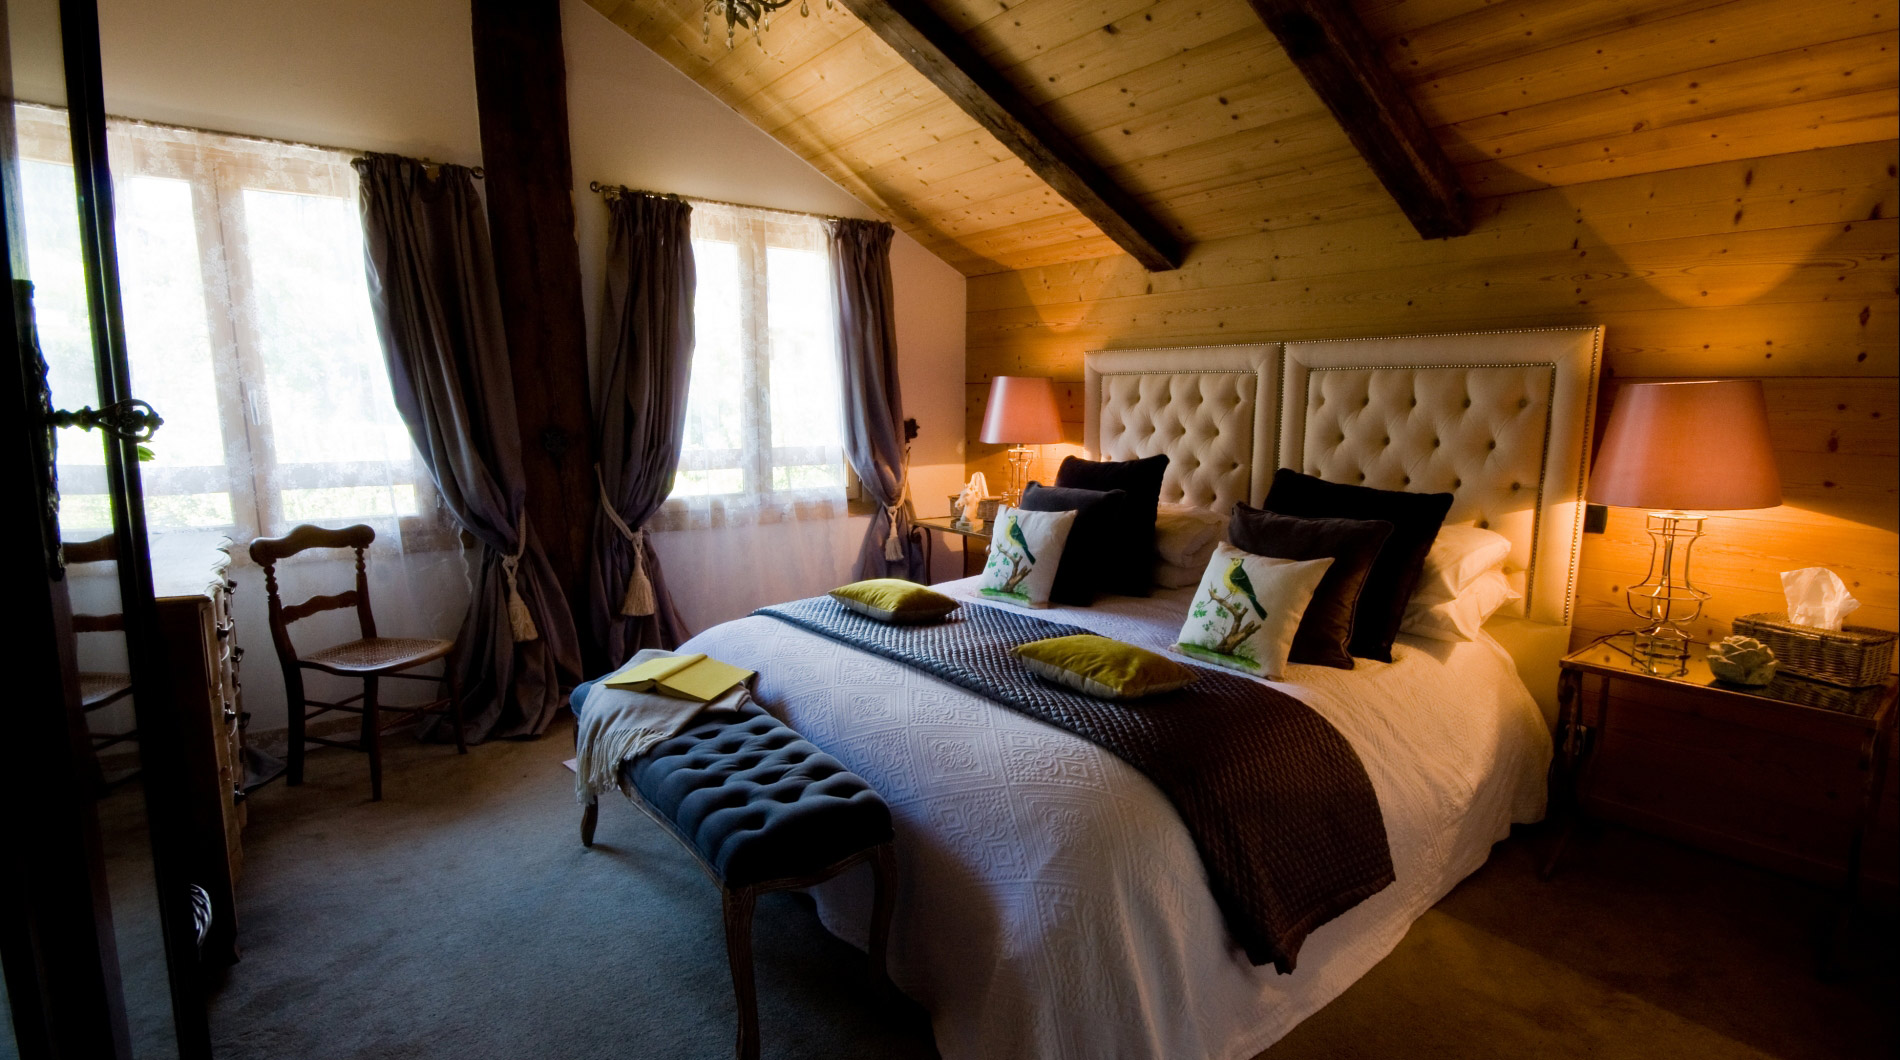 Bedrooms have the finest linen for maximum comfort & lovely furnishings